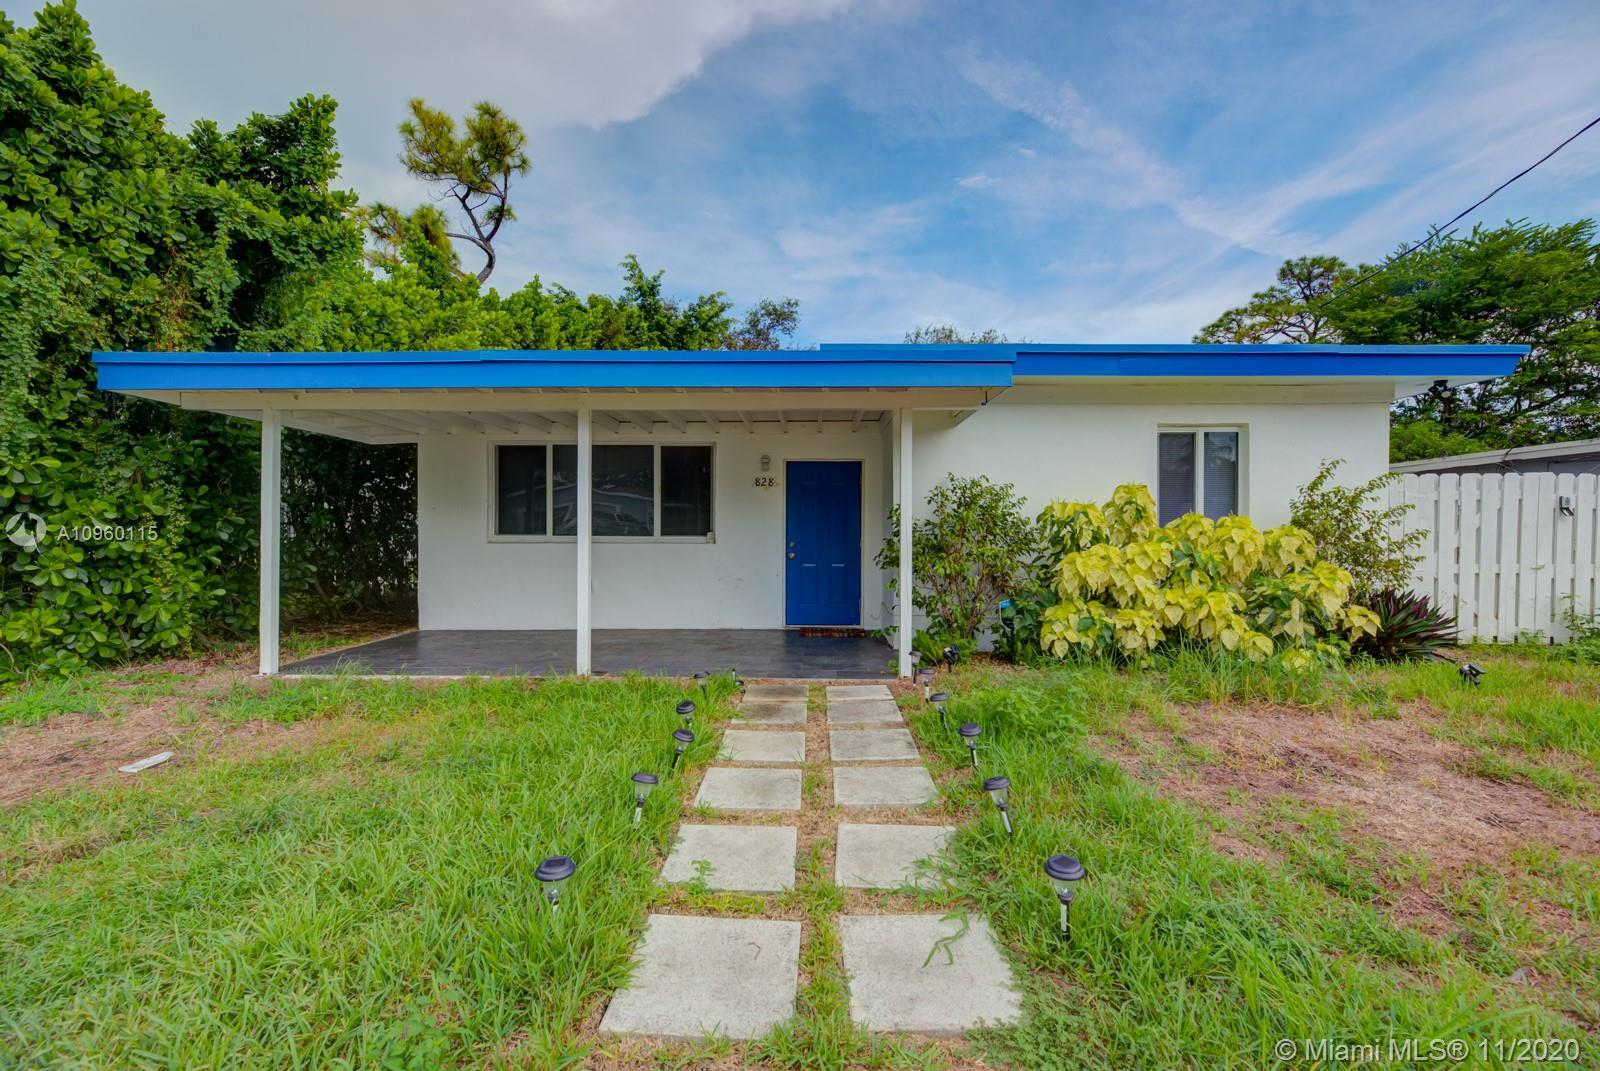 Move-in ready! FHA financing available . Brand new remodeled with 3 bedrooms and 2 baths. All new no